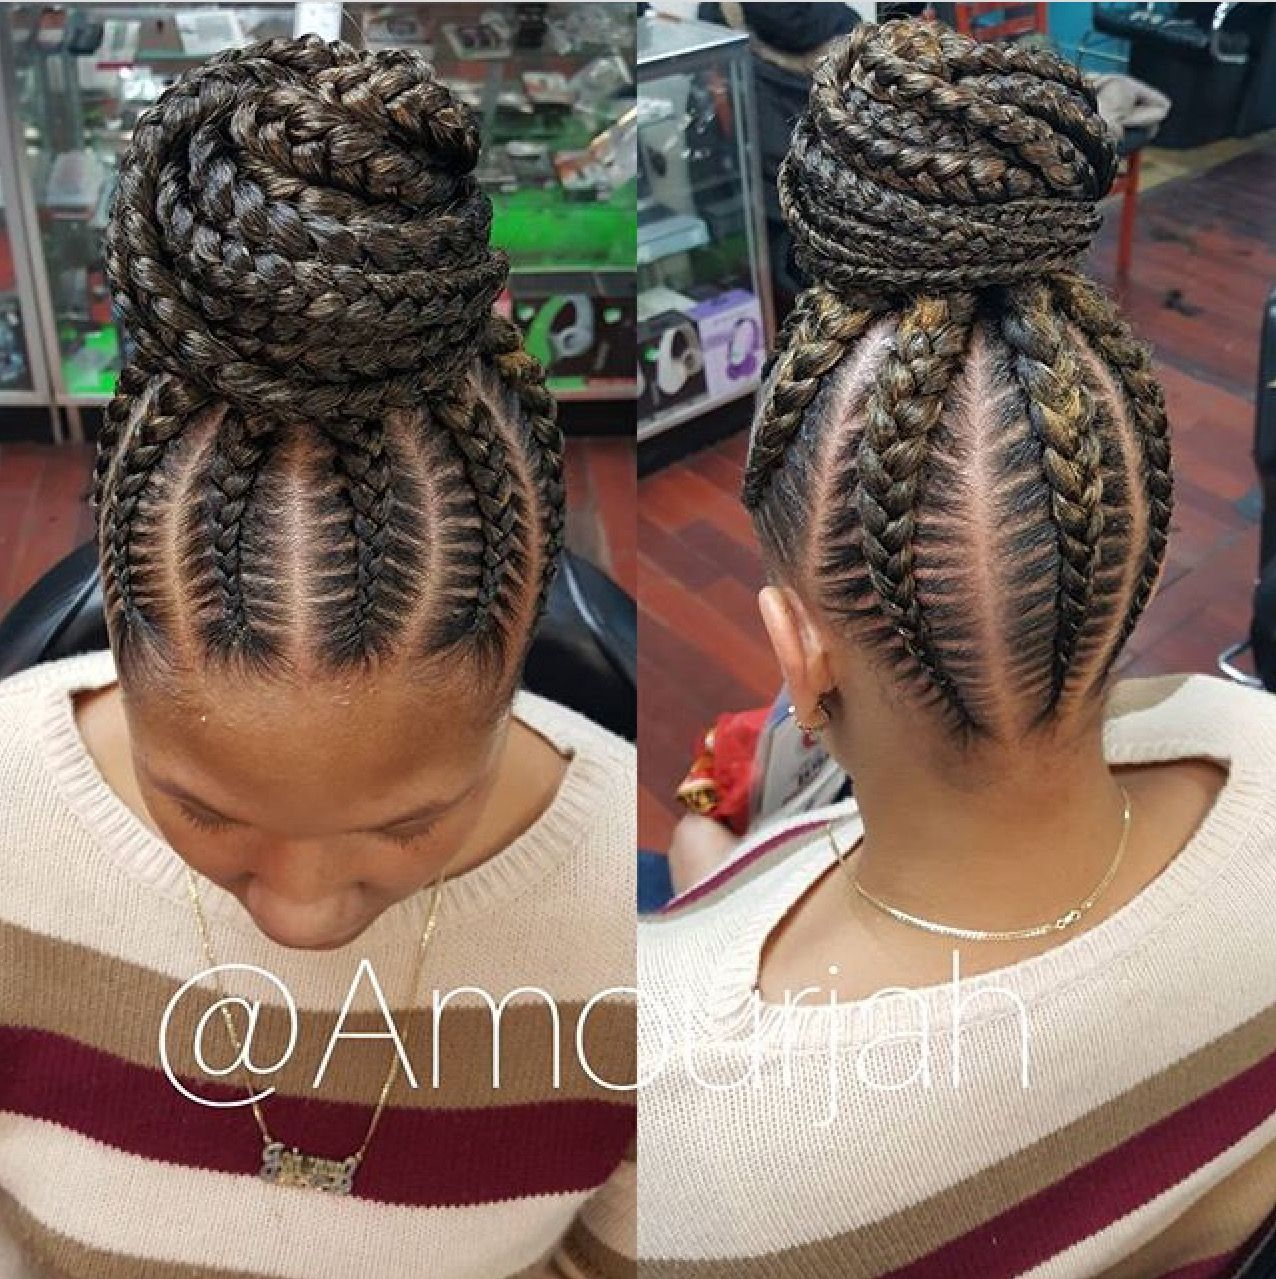 Braided Updo Braided Hairstyles Braided Bun Hairstyles Cornrow Hairstyles